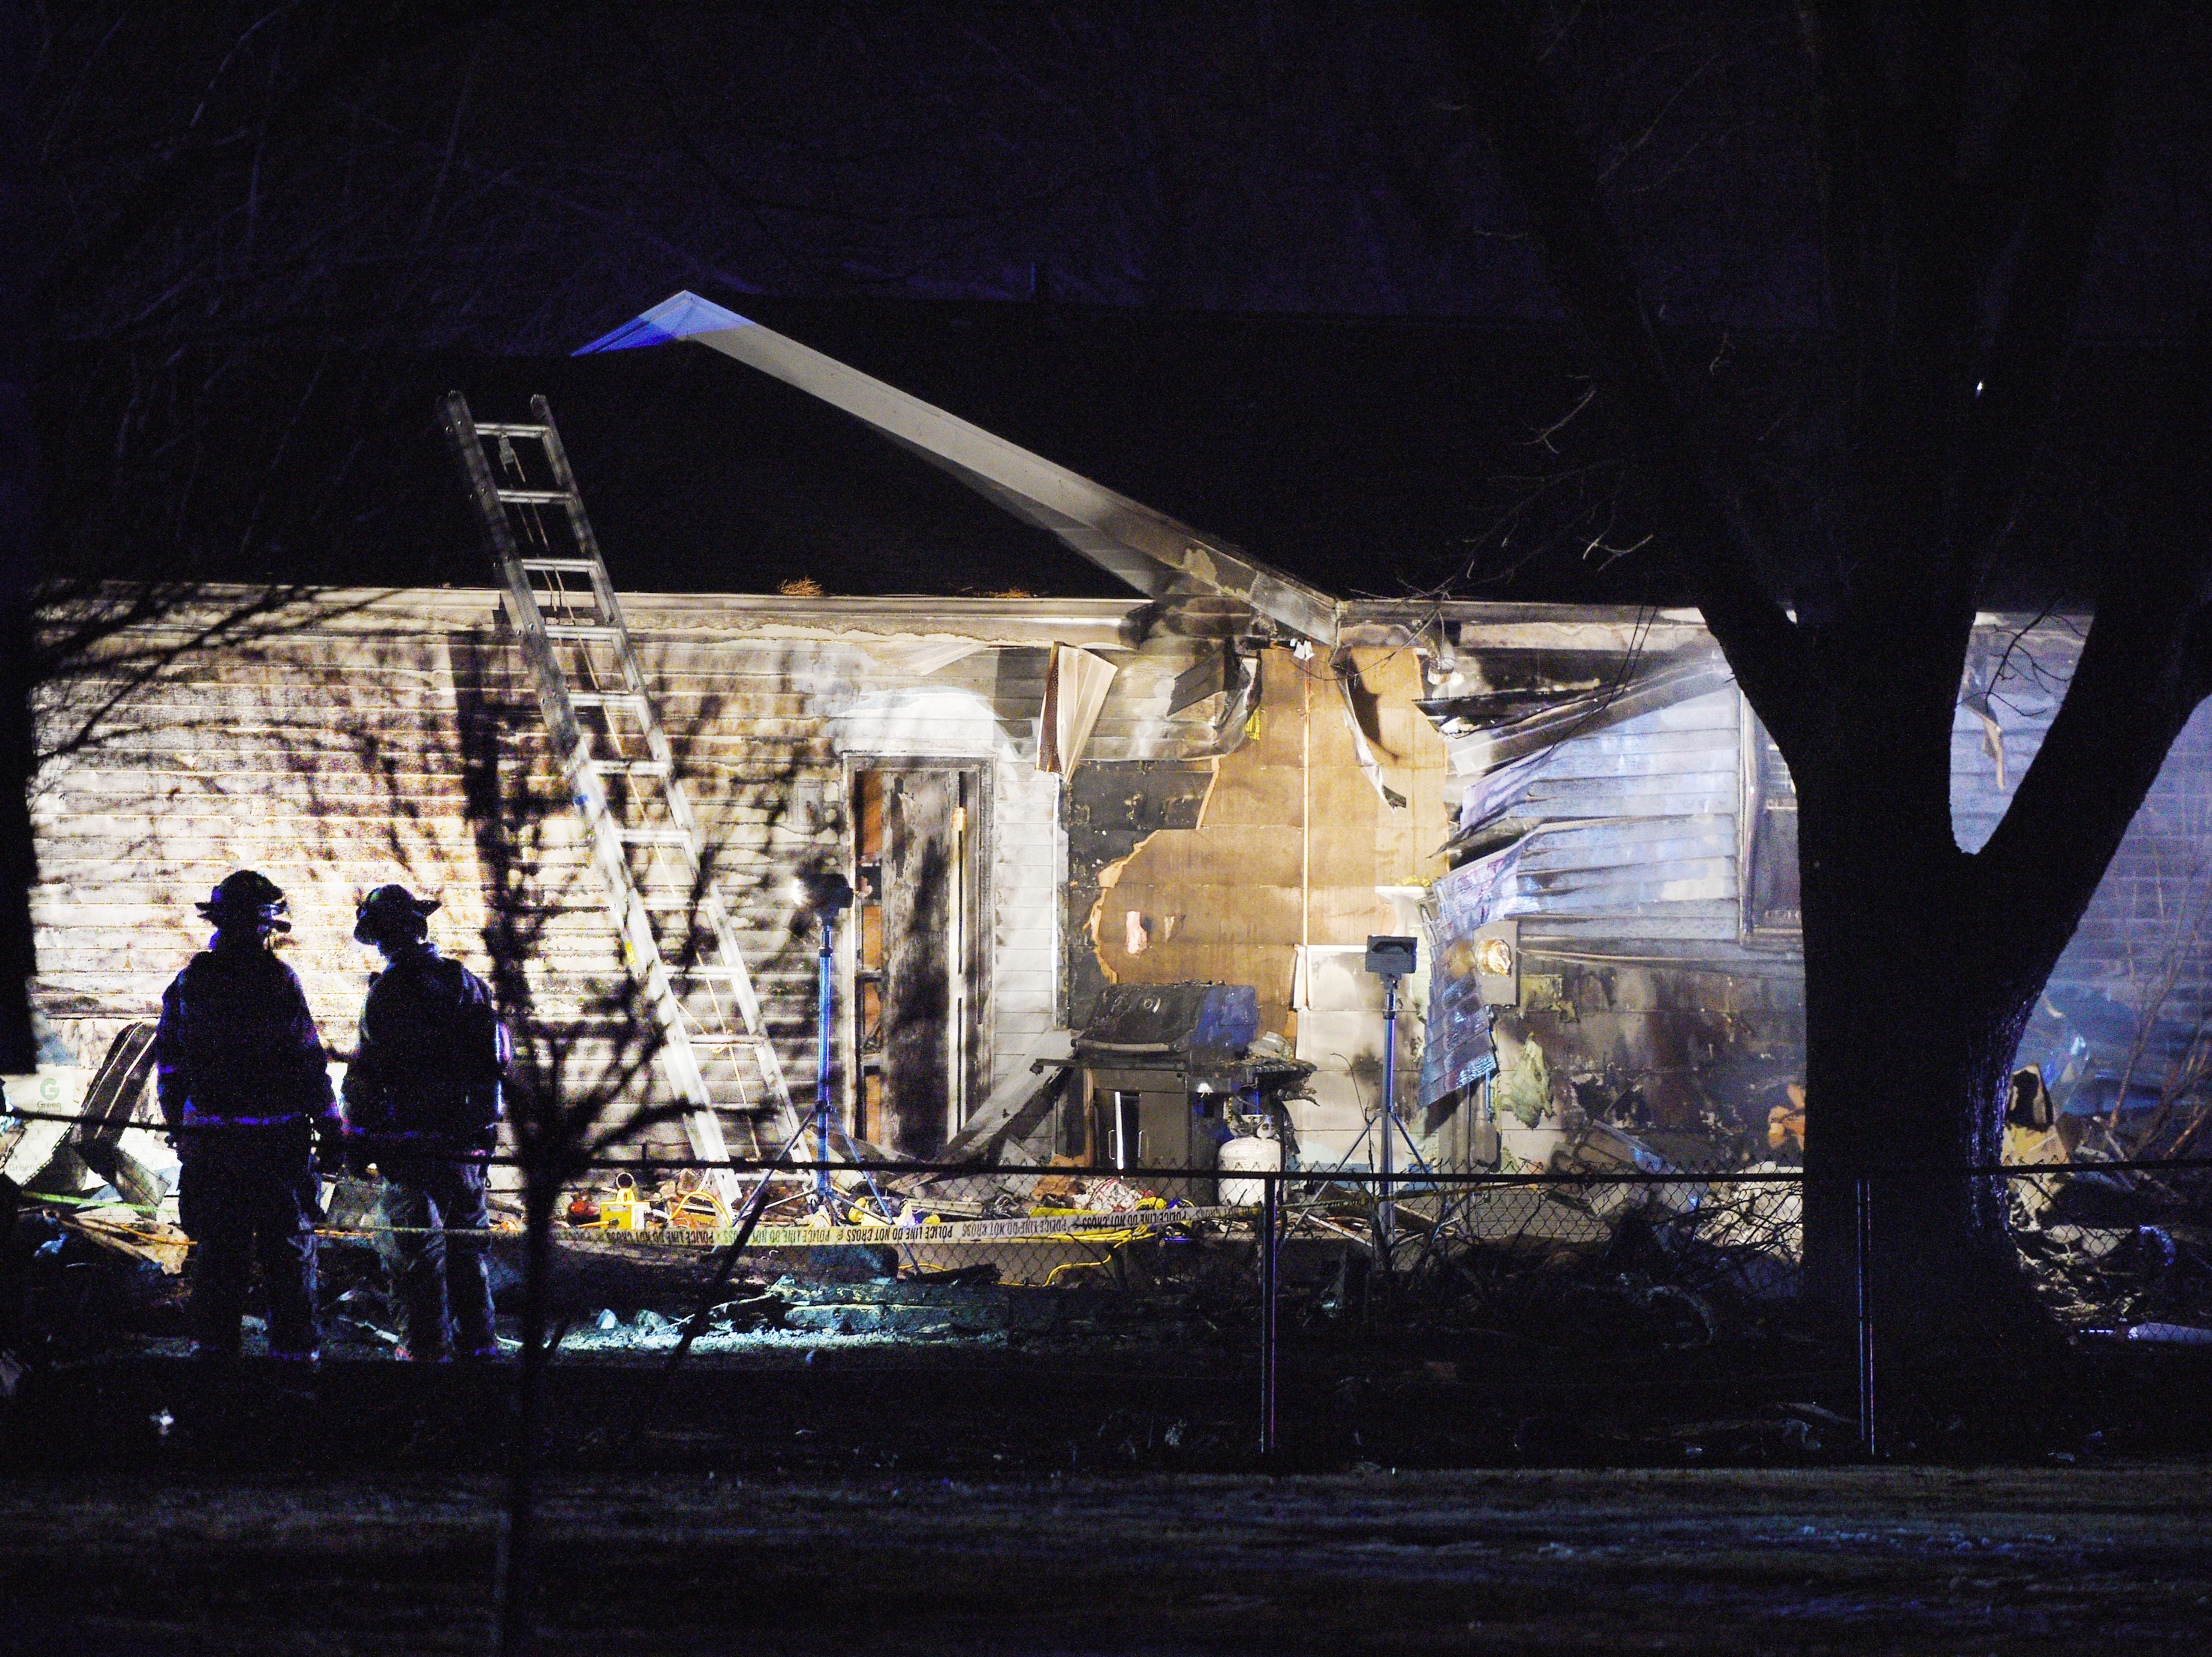 A plane crashed into a home in the 4200 block of south Birchwood Avenue Tuesday, Dec. 25, in Sioux Falls.